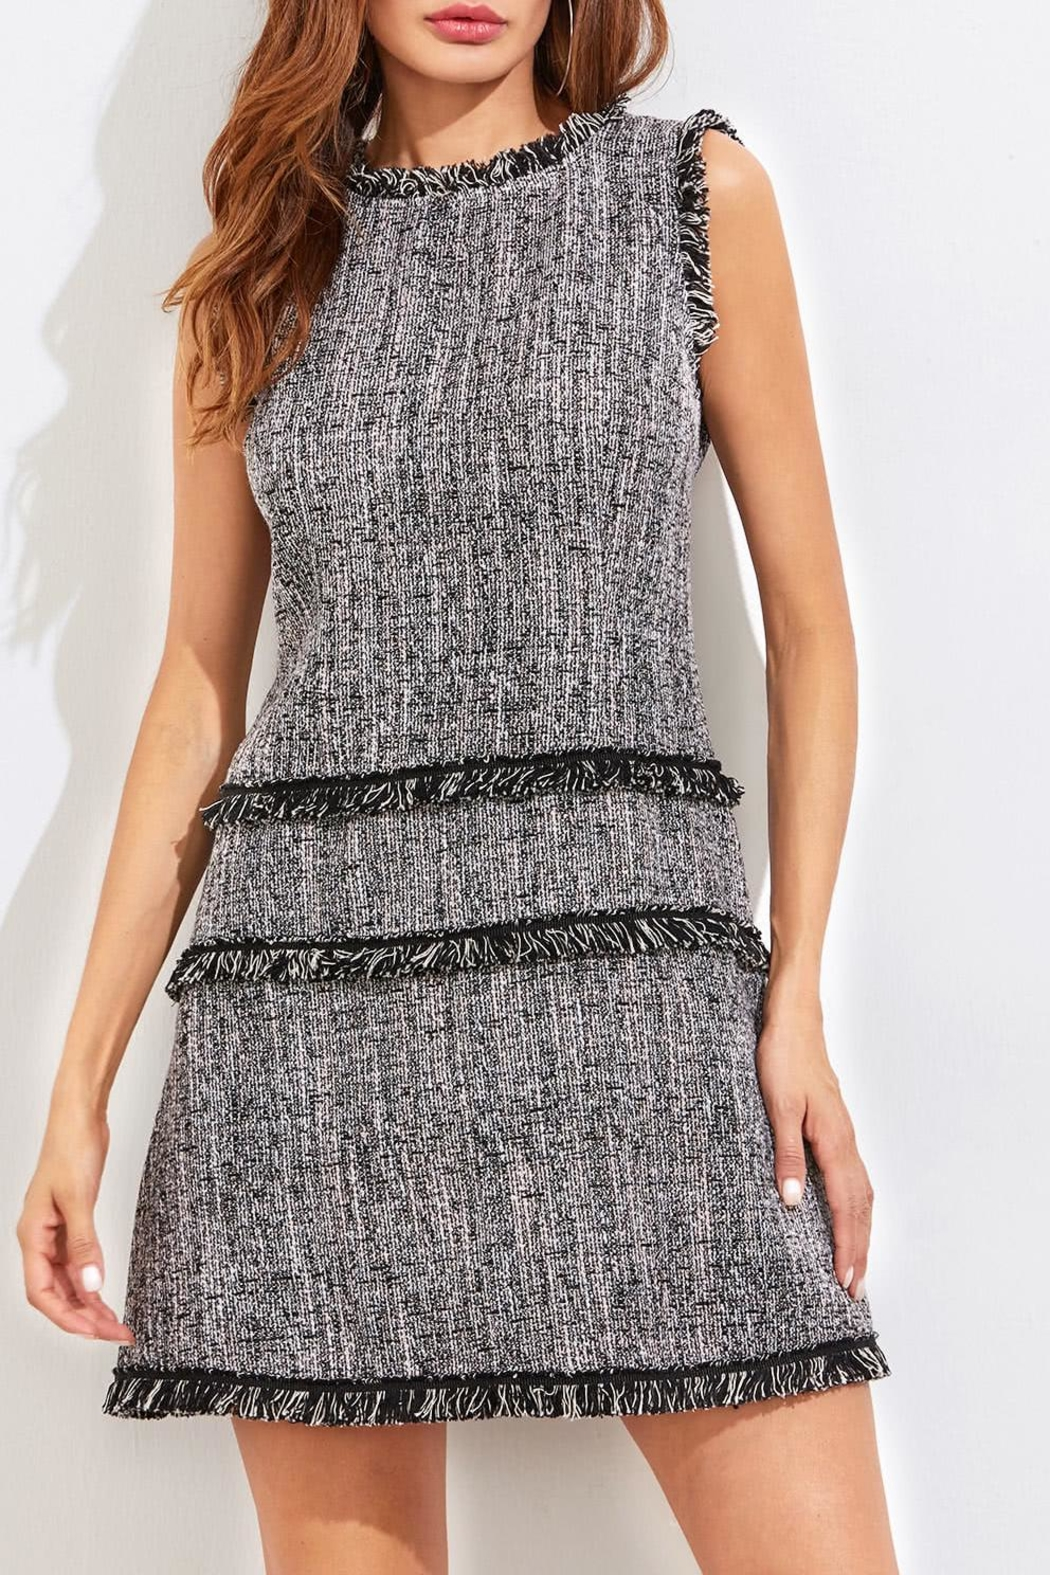 House of Atelier Classic Tweed Dress - Main Image